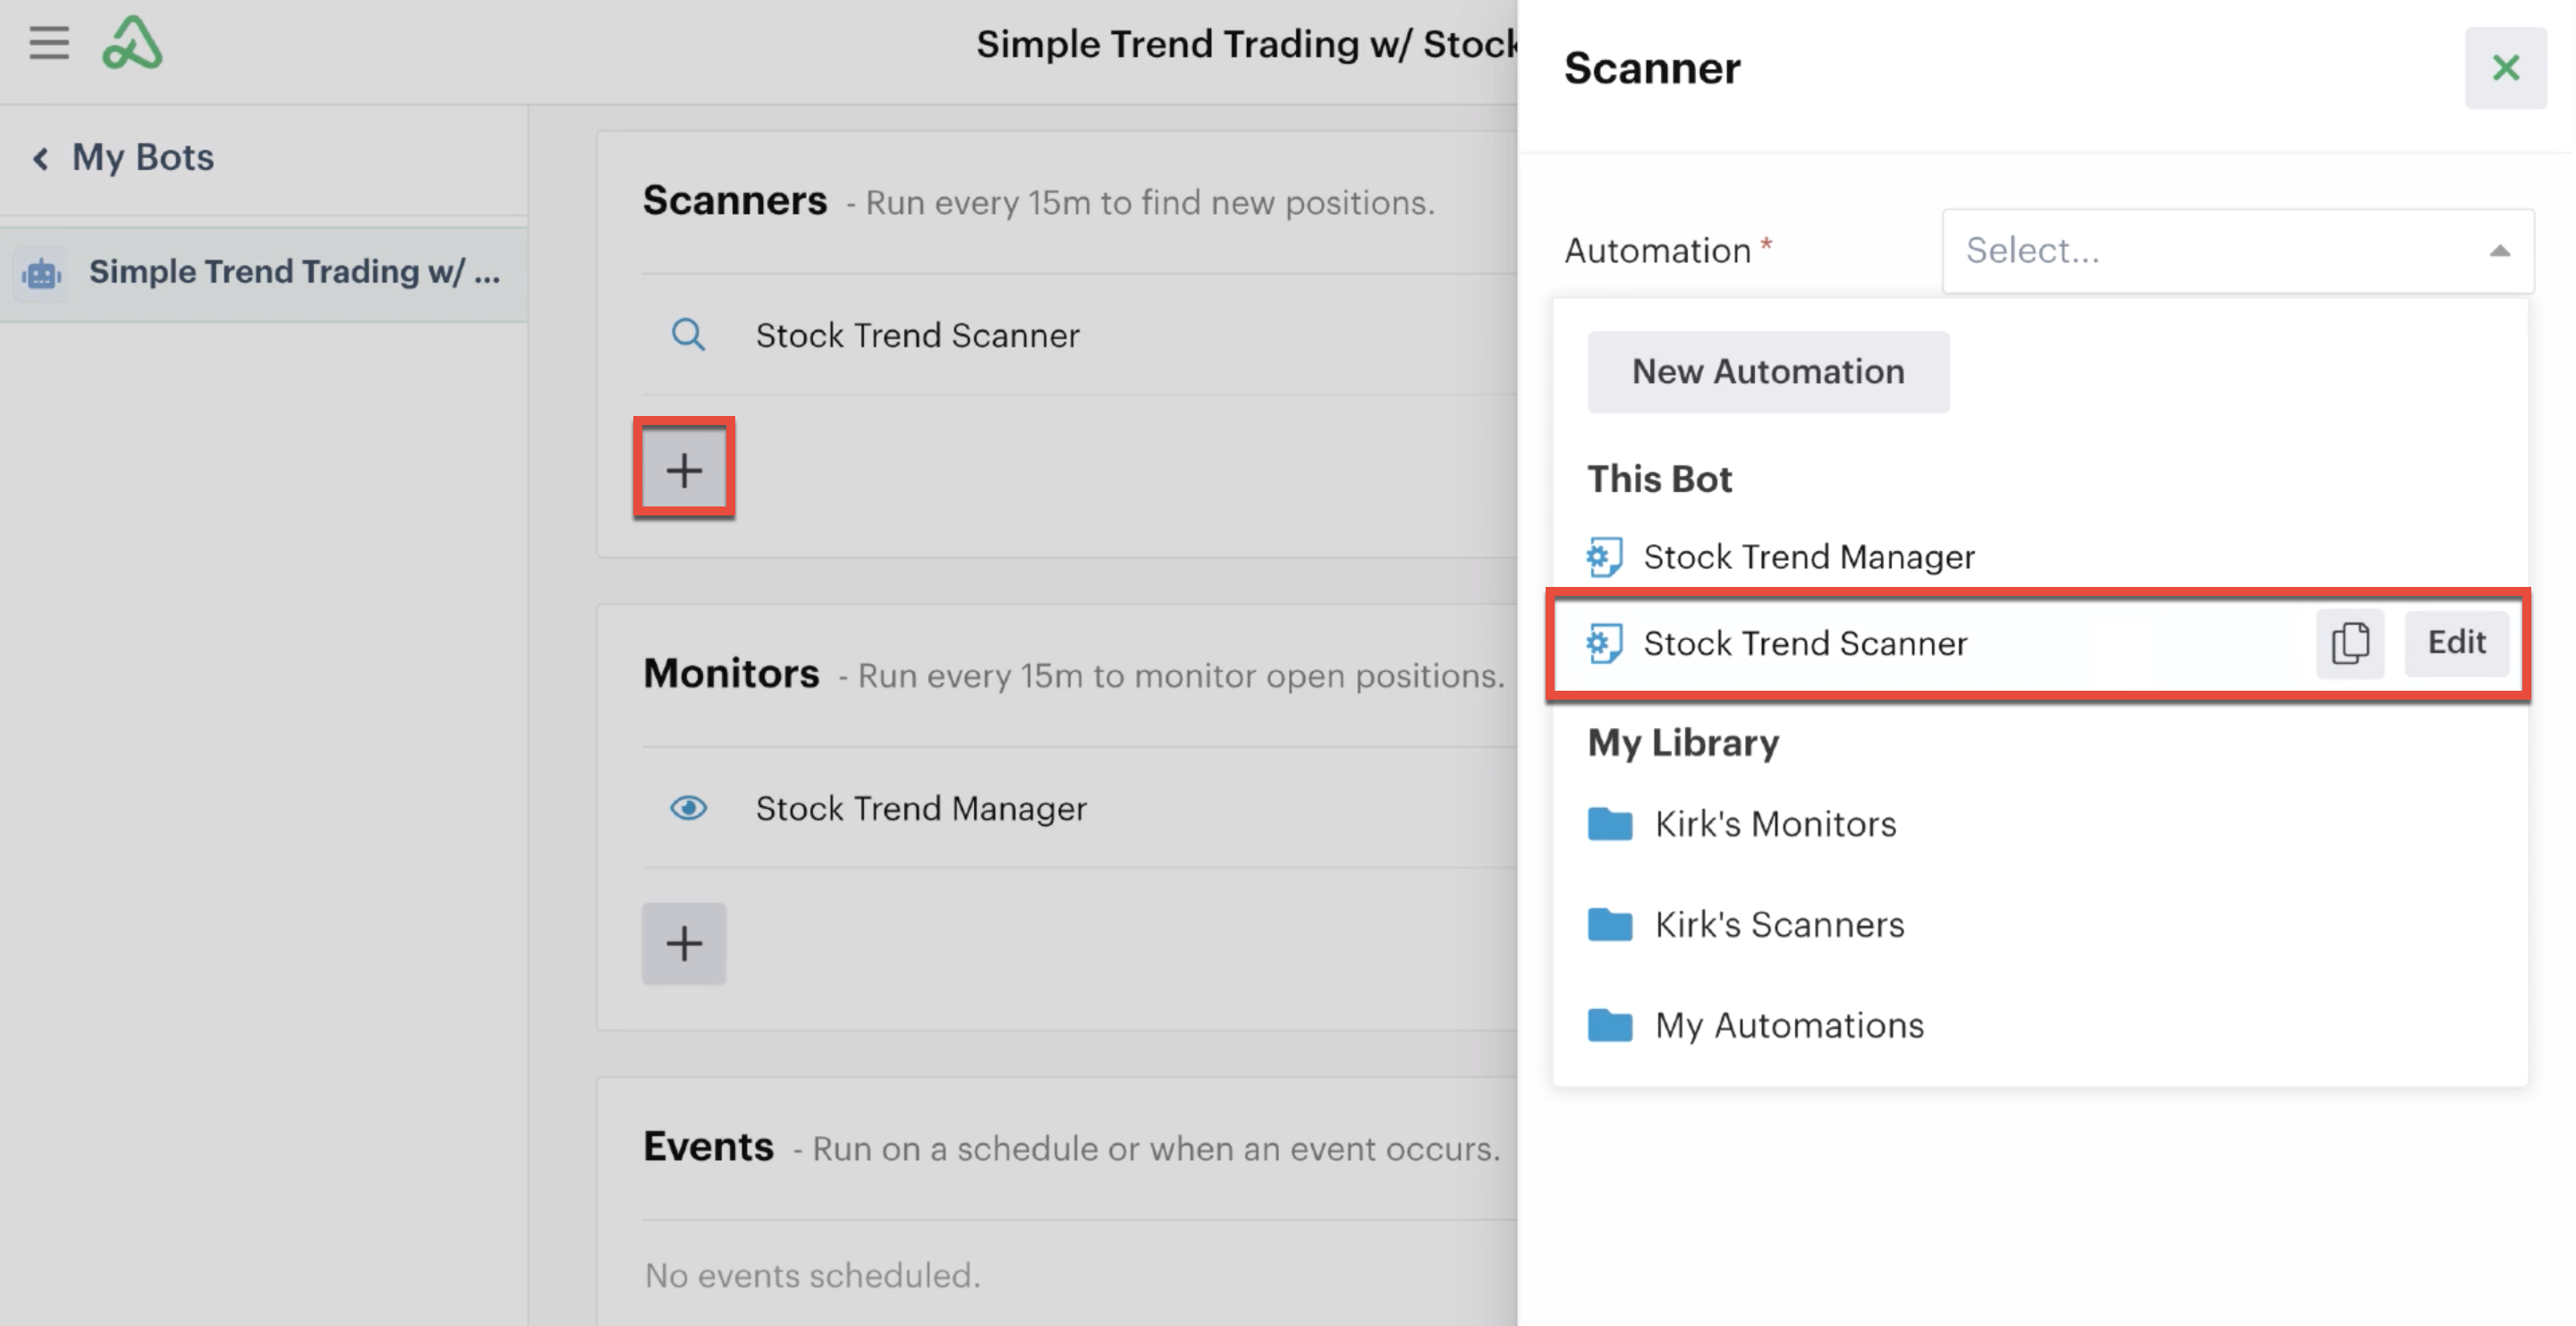 Adding a scanner automation